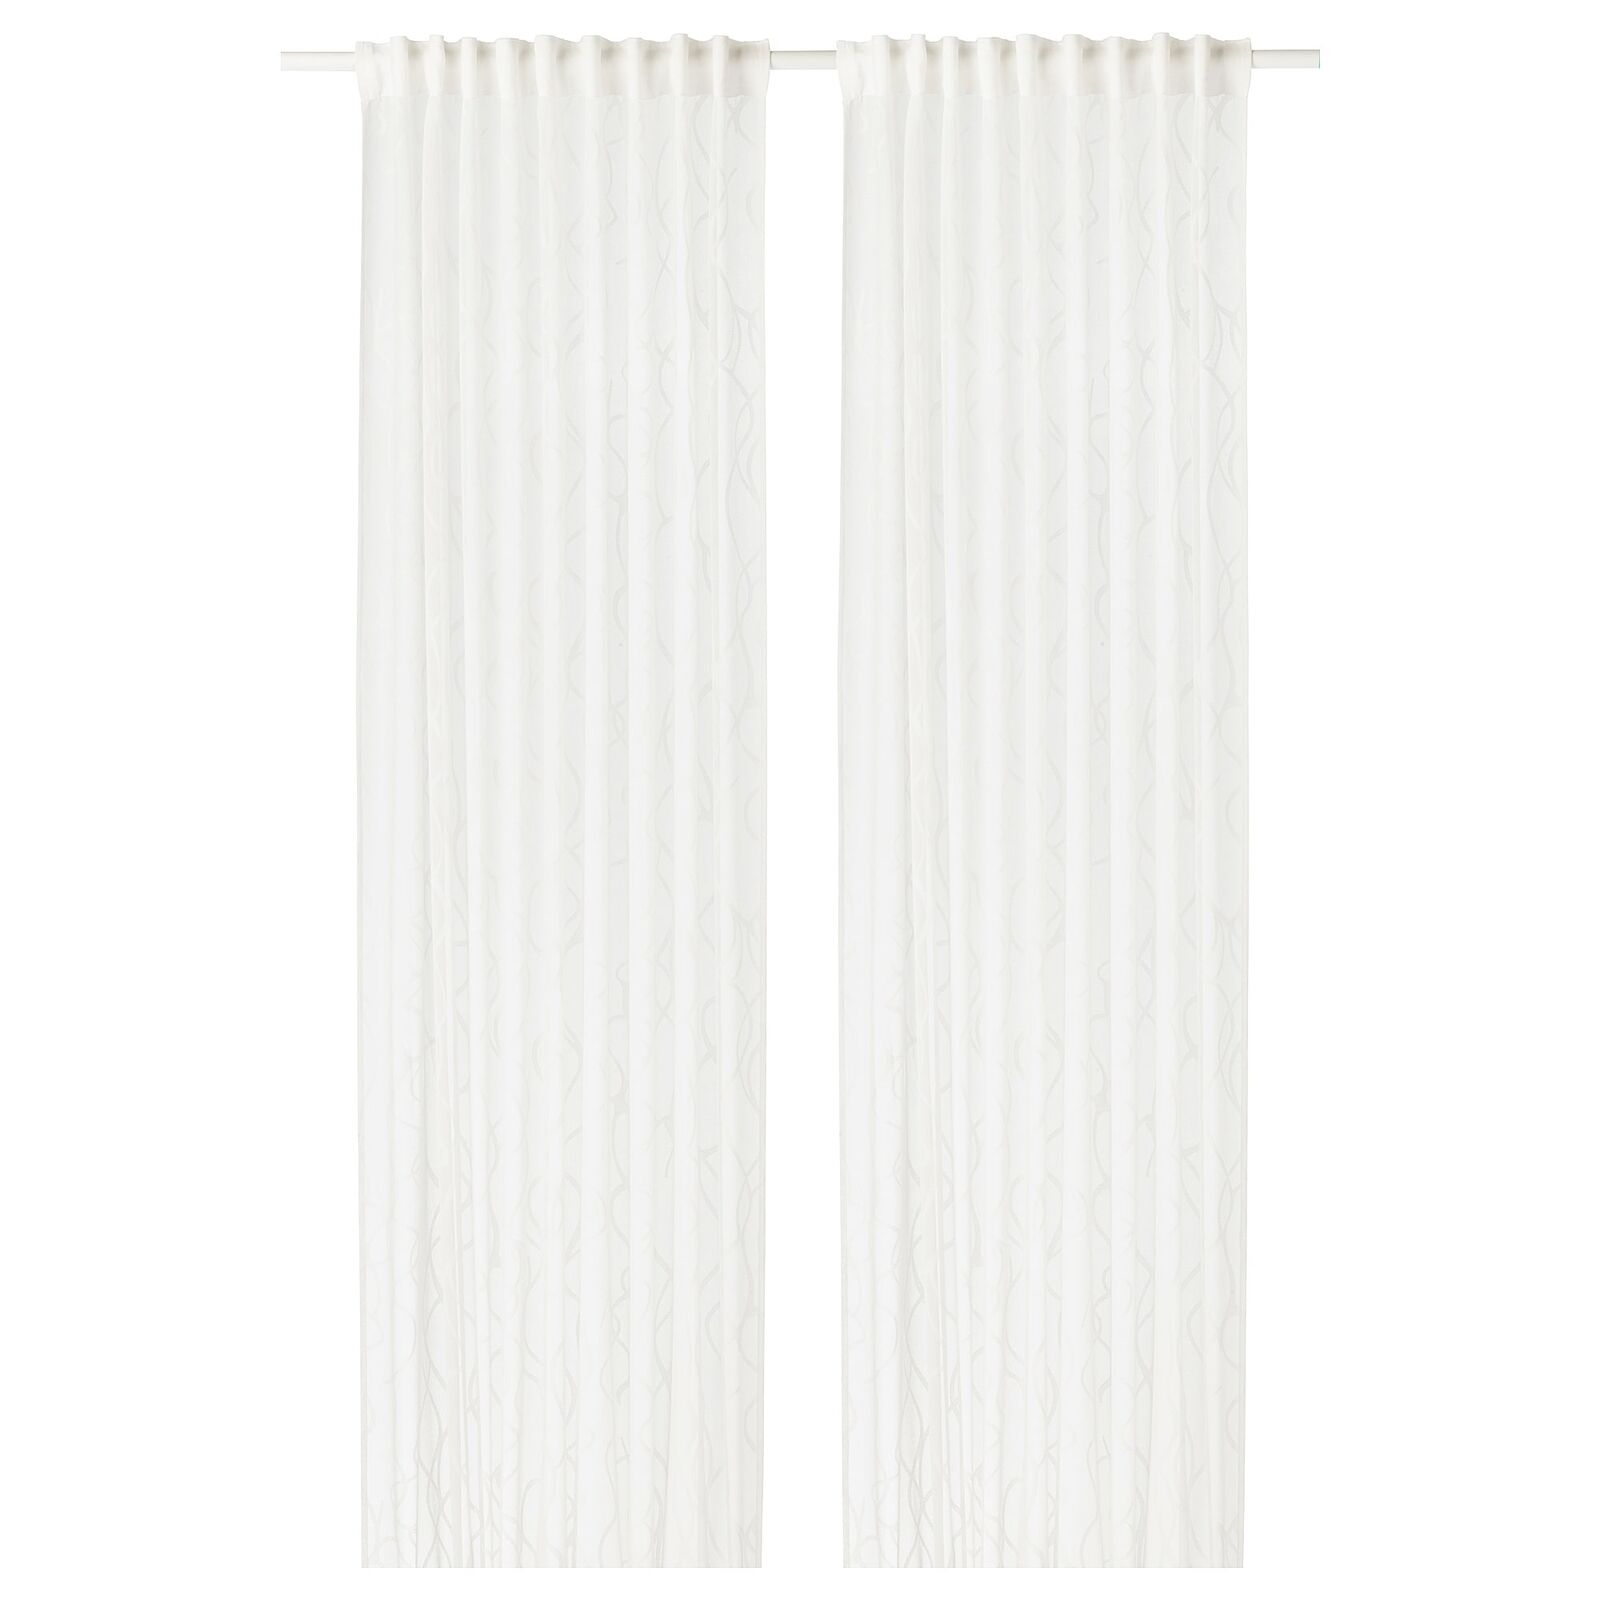 1 Pair IKEA Sheer Sheer Sheer Curtains Bedroom Living Room Window Blinds 250x145cm Weiß 1f2d11